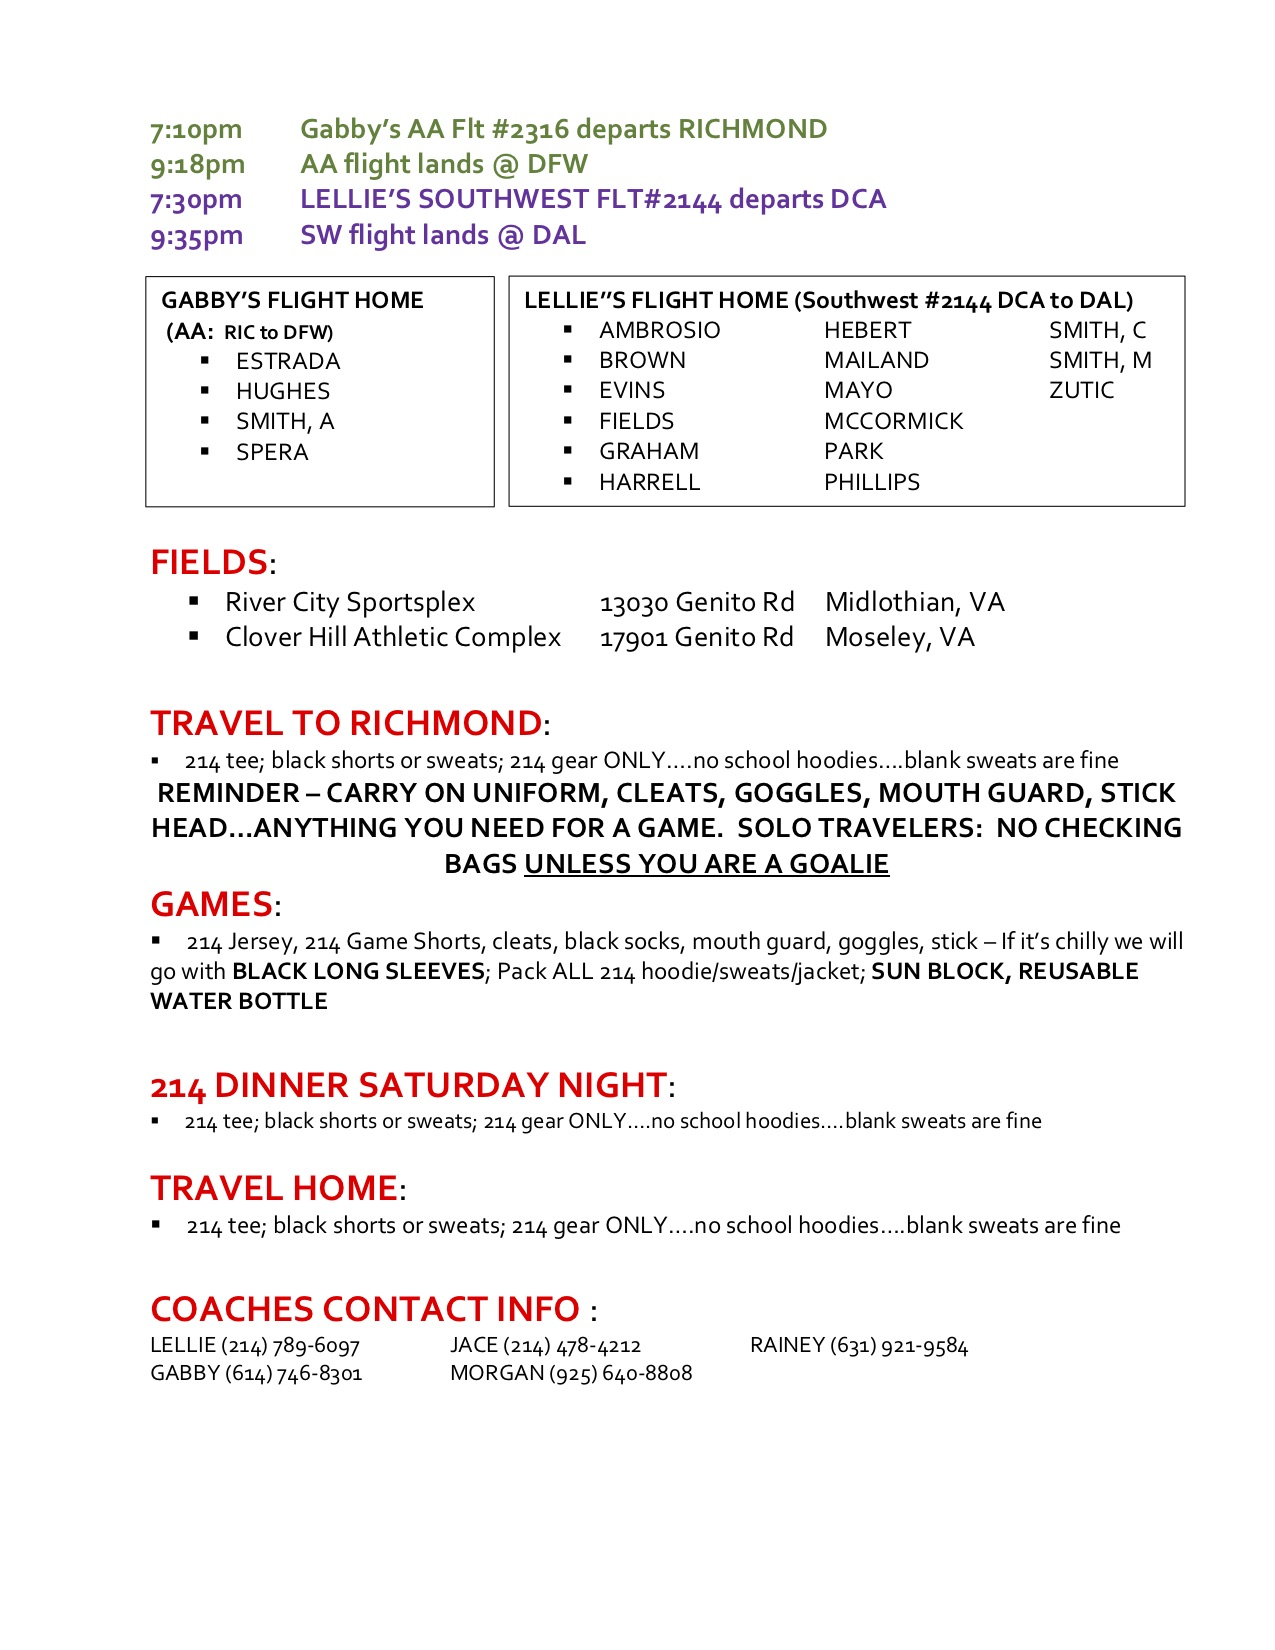 pg2-RICHMOND ITINERARY 2019.jpg